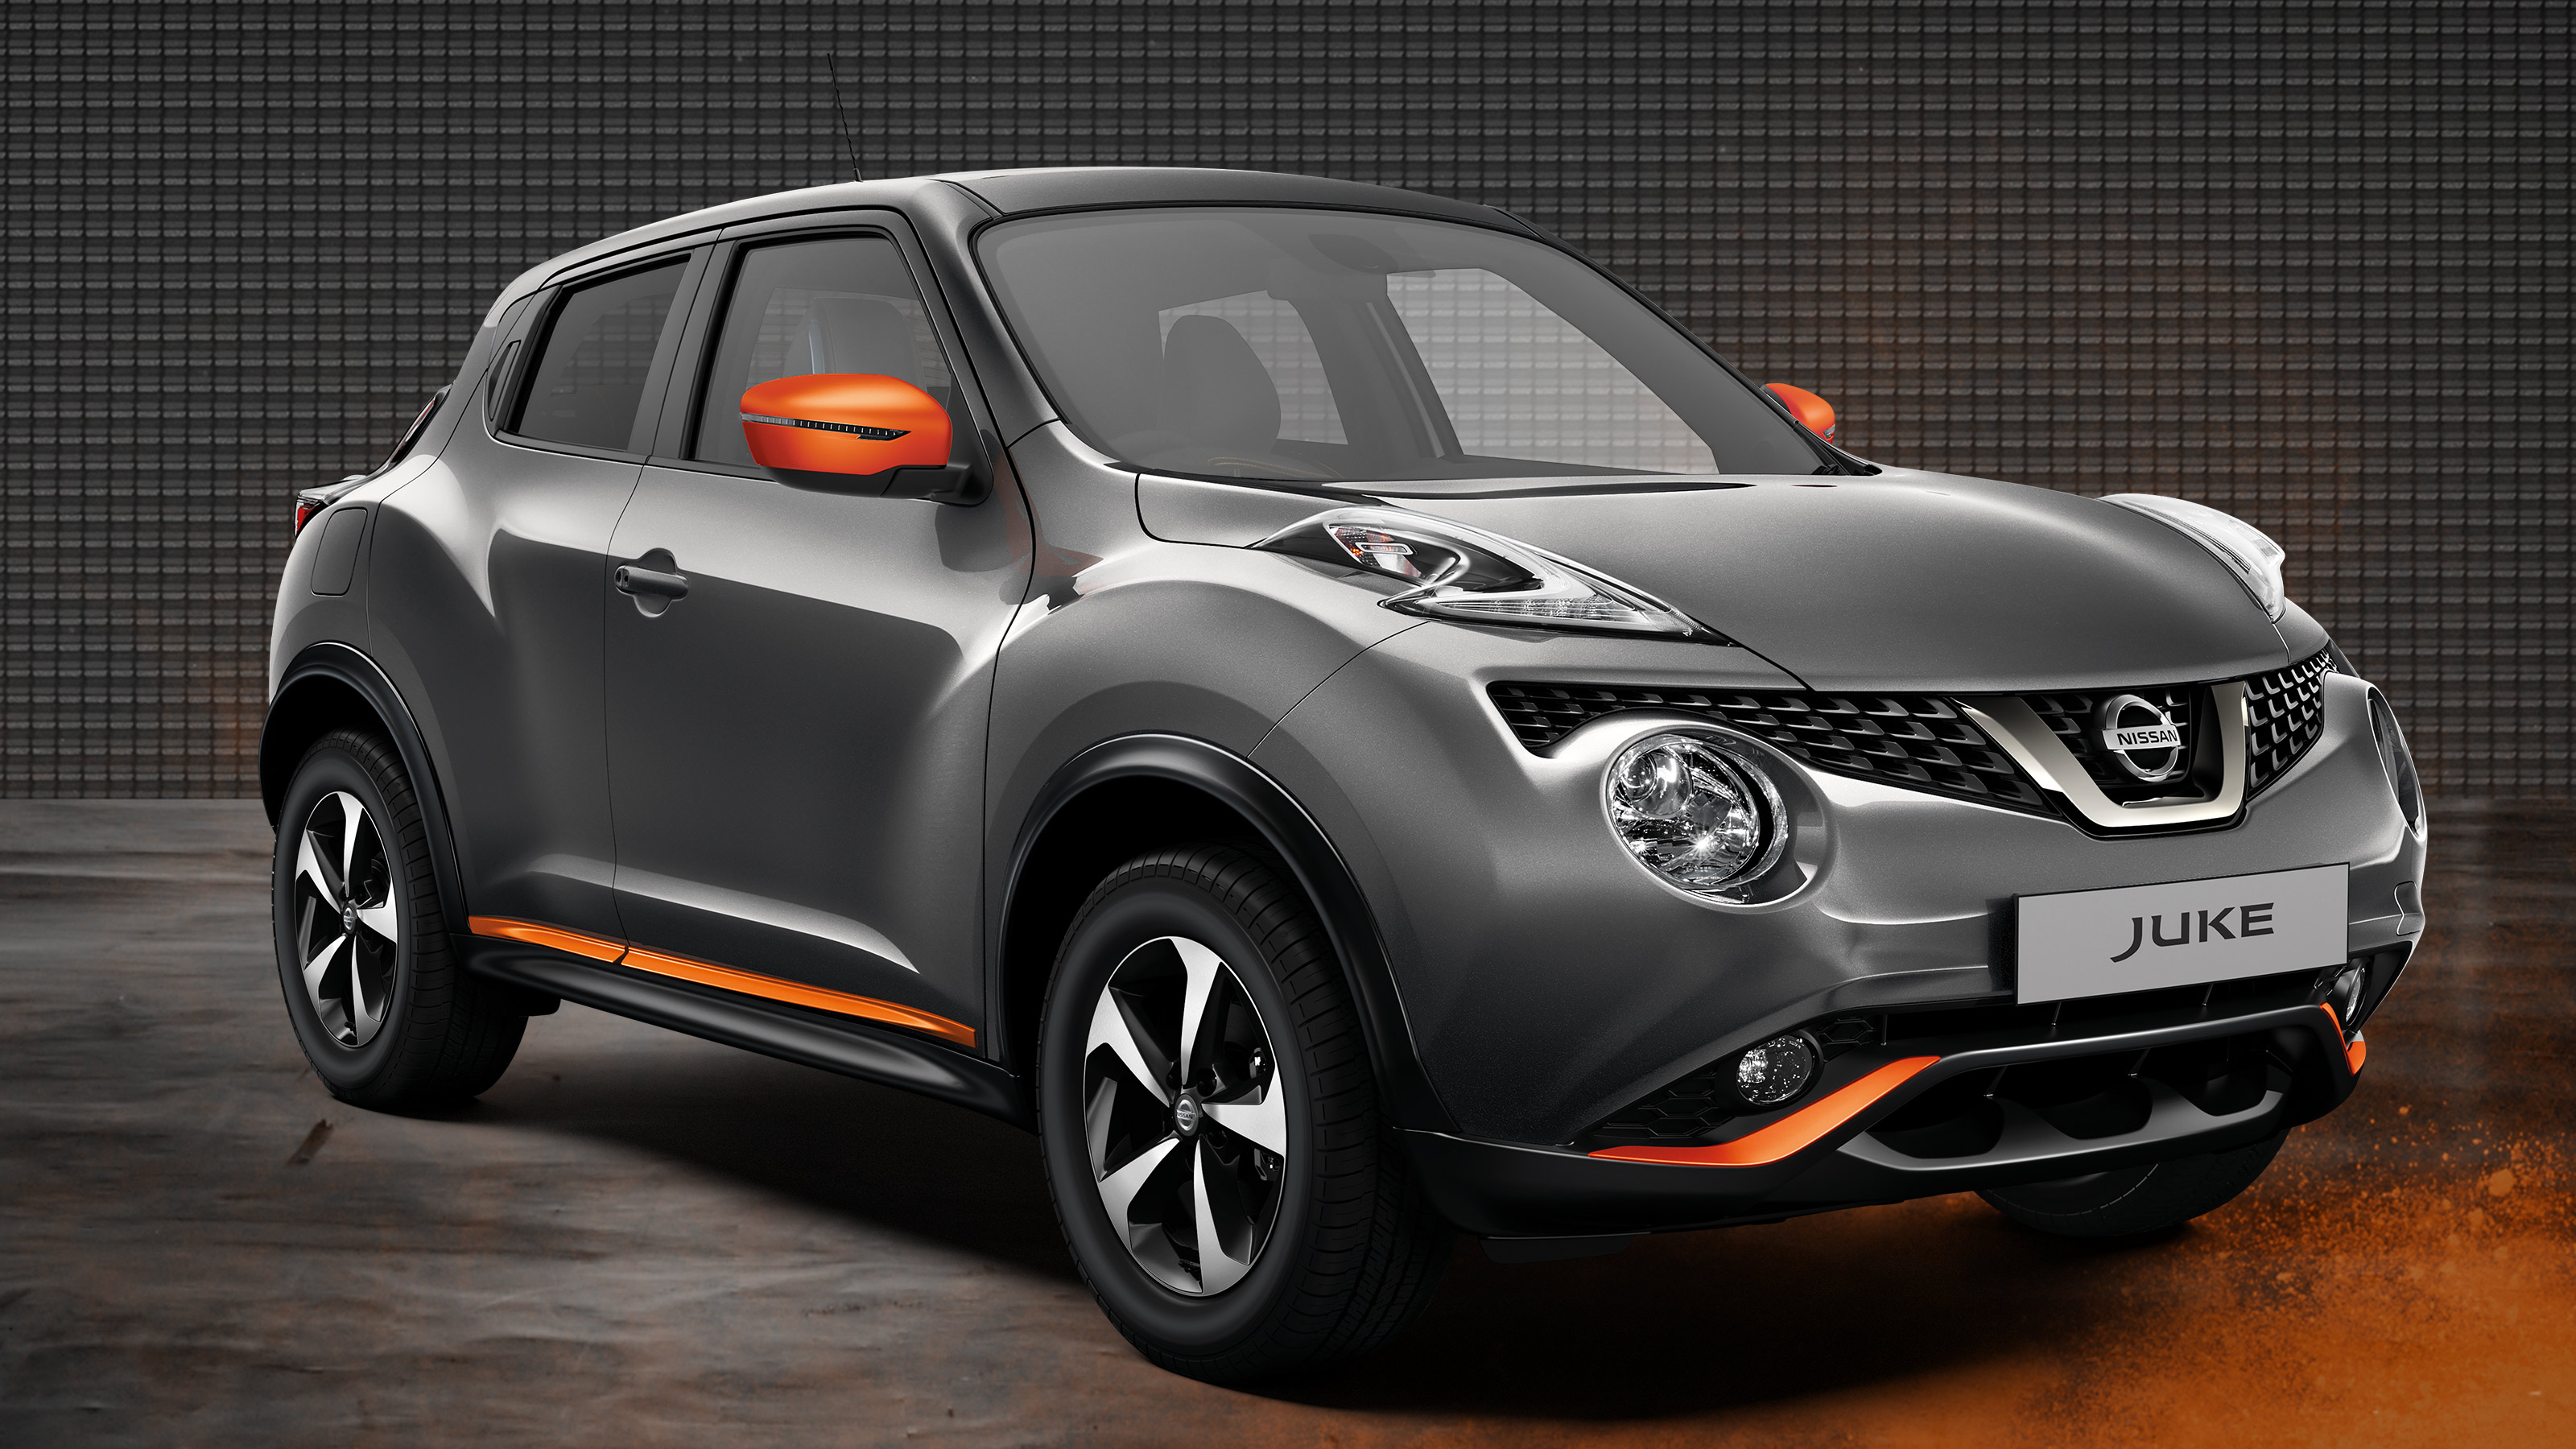 Grey Nissan JUKE with orange accents on bumpers and wing mirror.